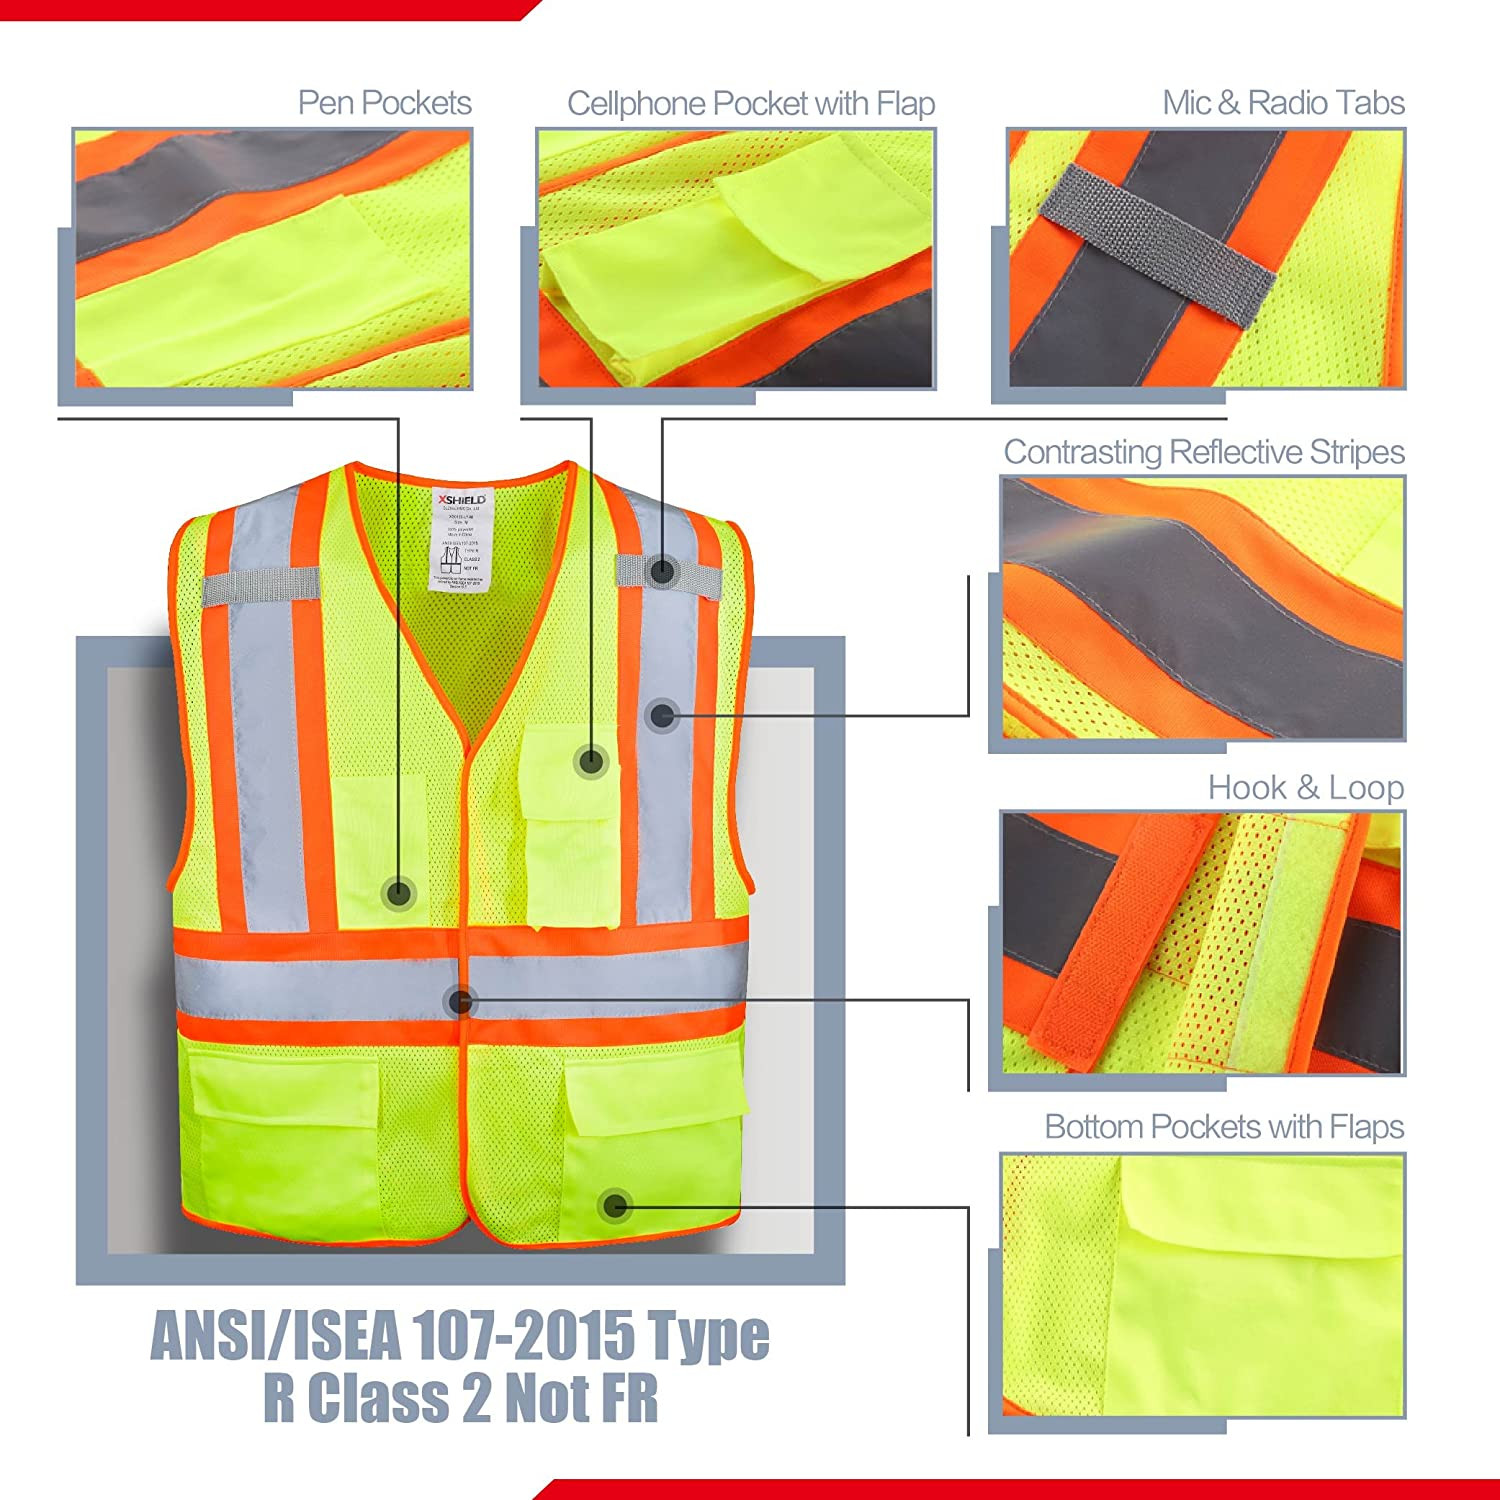 HMC XSHIELD XS0100,High Visibility Safety Vest with Silver Stripe,ANSI//ISEA 107-2015 Type R Class2 Not FR,Pack of 5 M, Yellow